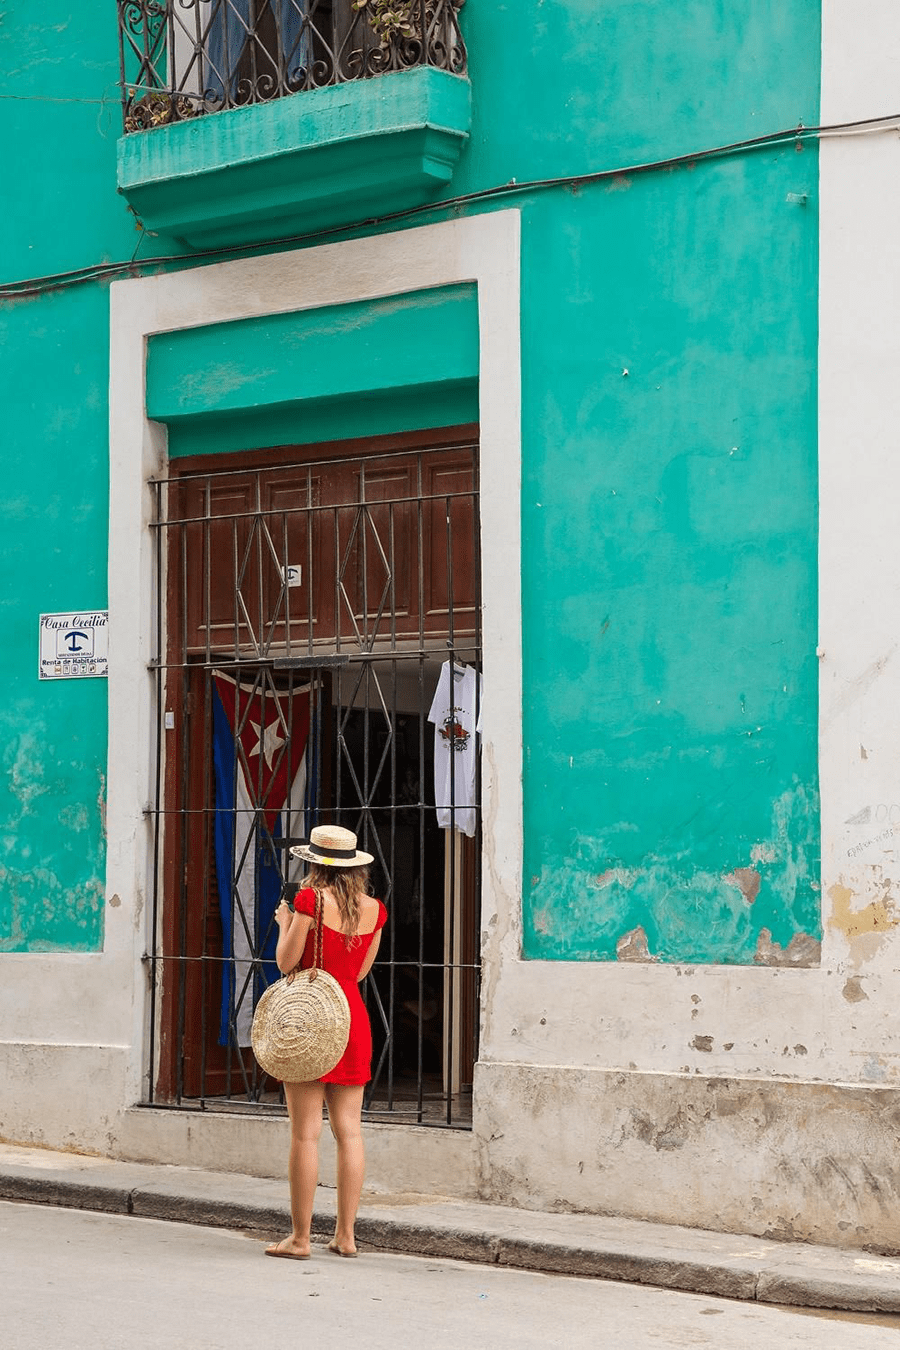 8 Reasons To Visit Cuba That You'd Least Expect